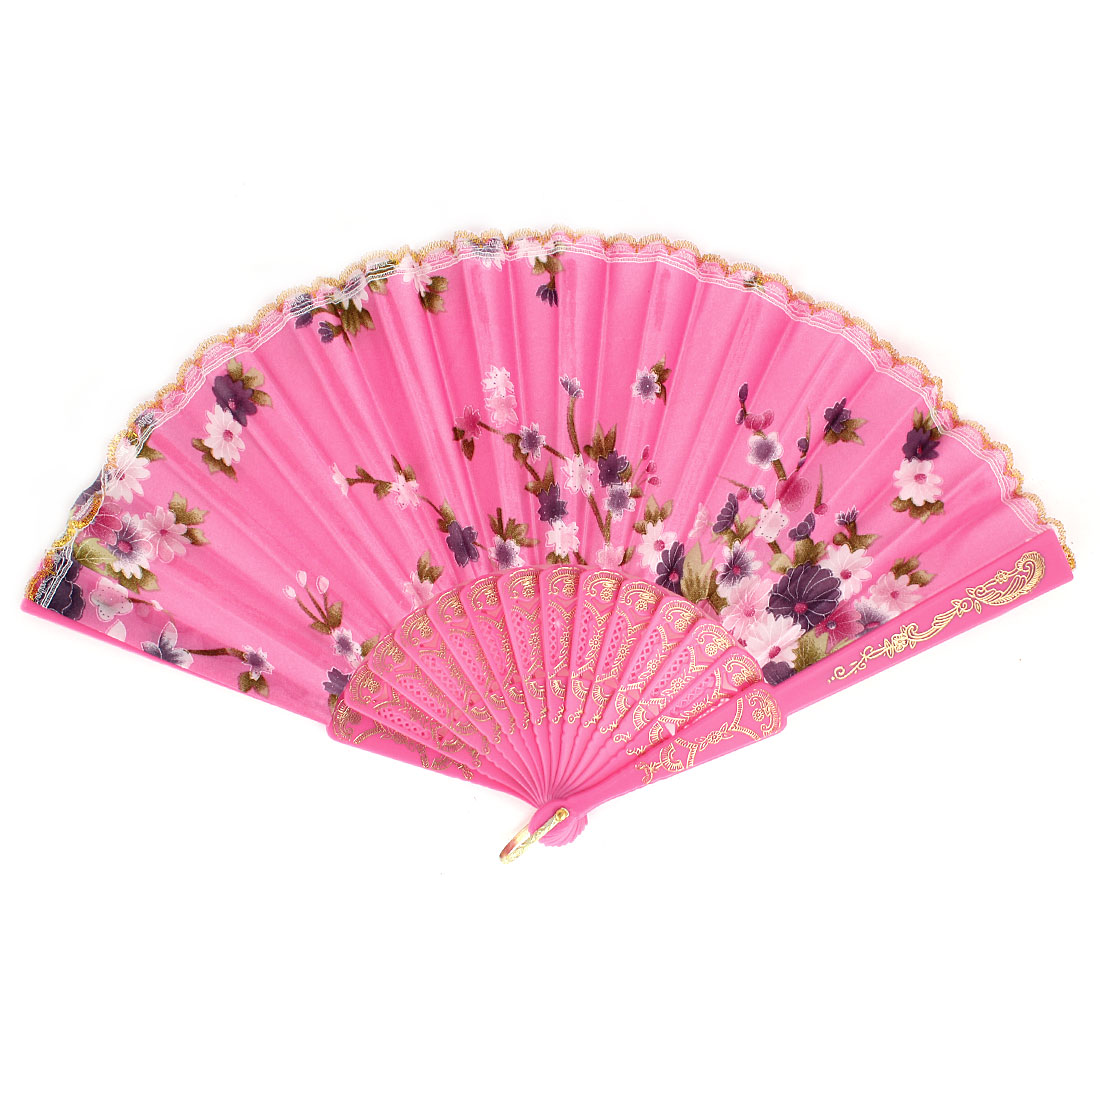 Flower Pattern Lace Trim Plastic Ribs Dancing Folding Hand Fan Pink